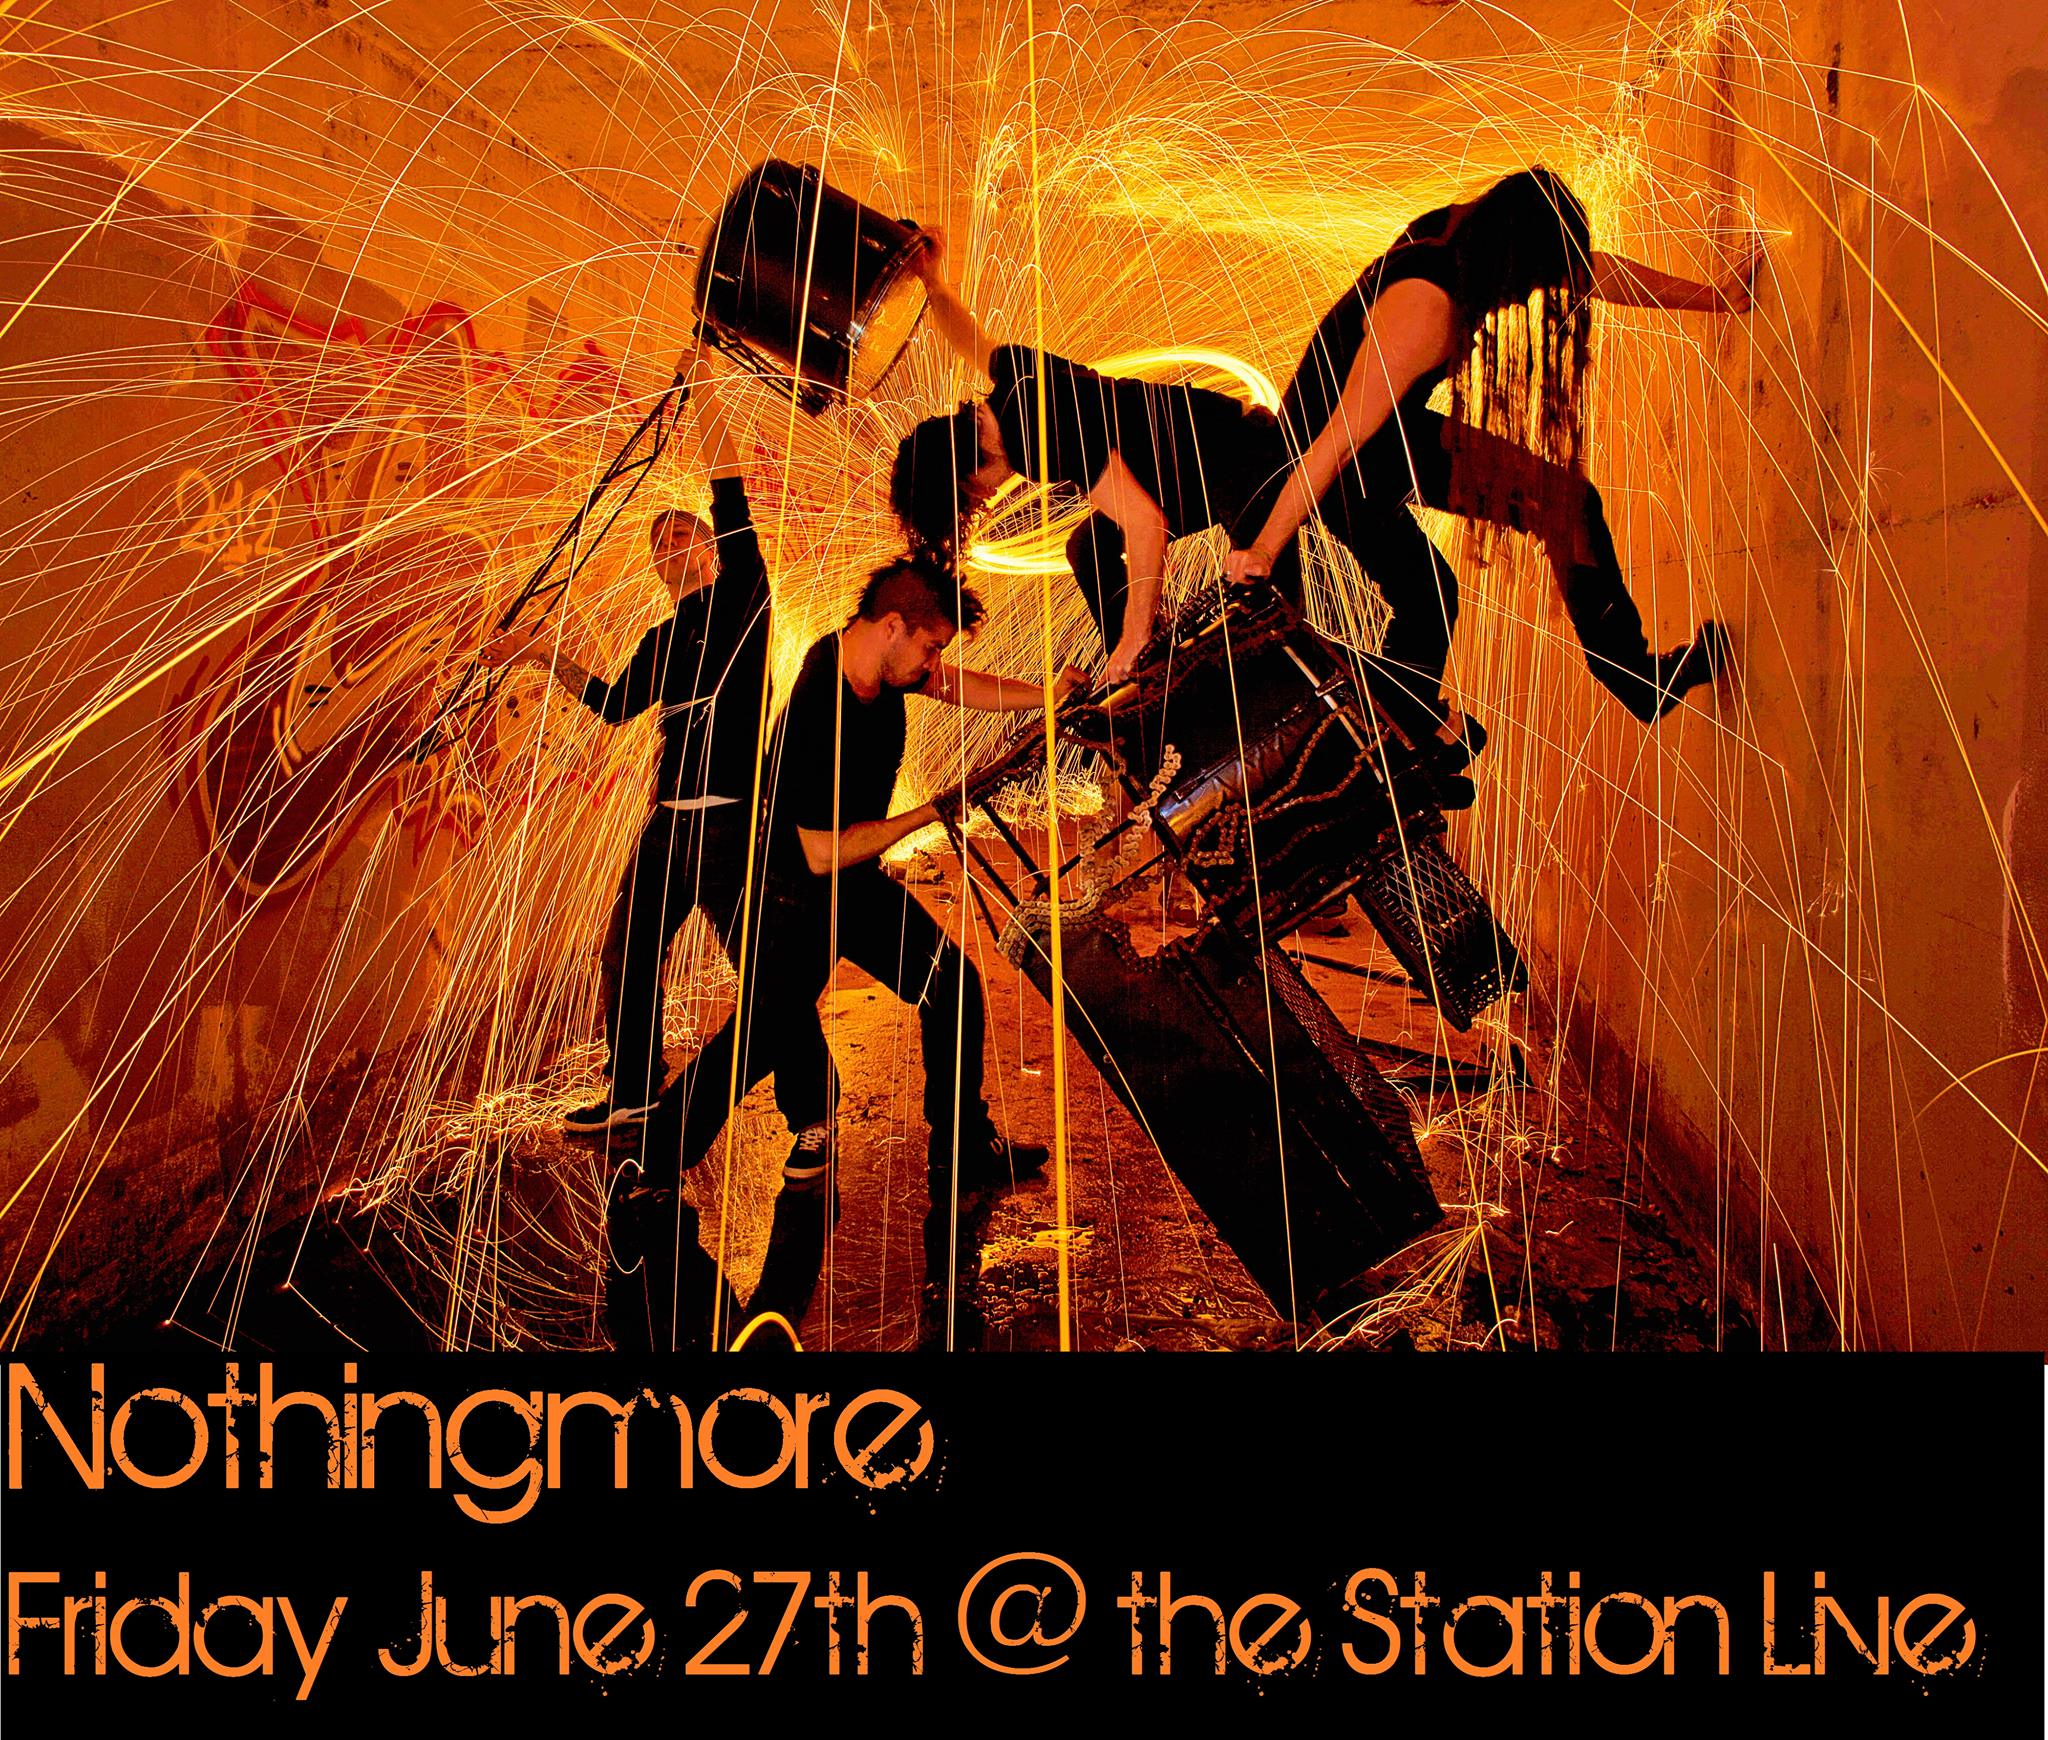 NOTHING MORE, SECRETS OF MARIANA, OH RIEN, & TANDEM: 4 Great Bands Tonight at The Station LIVE